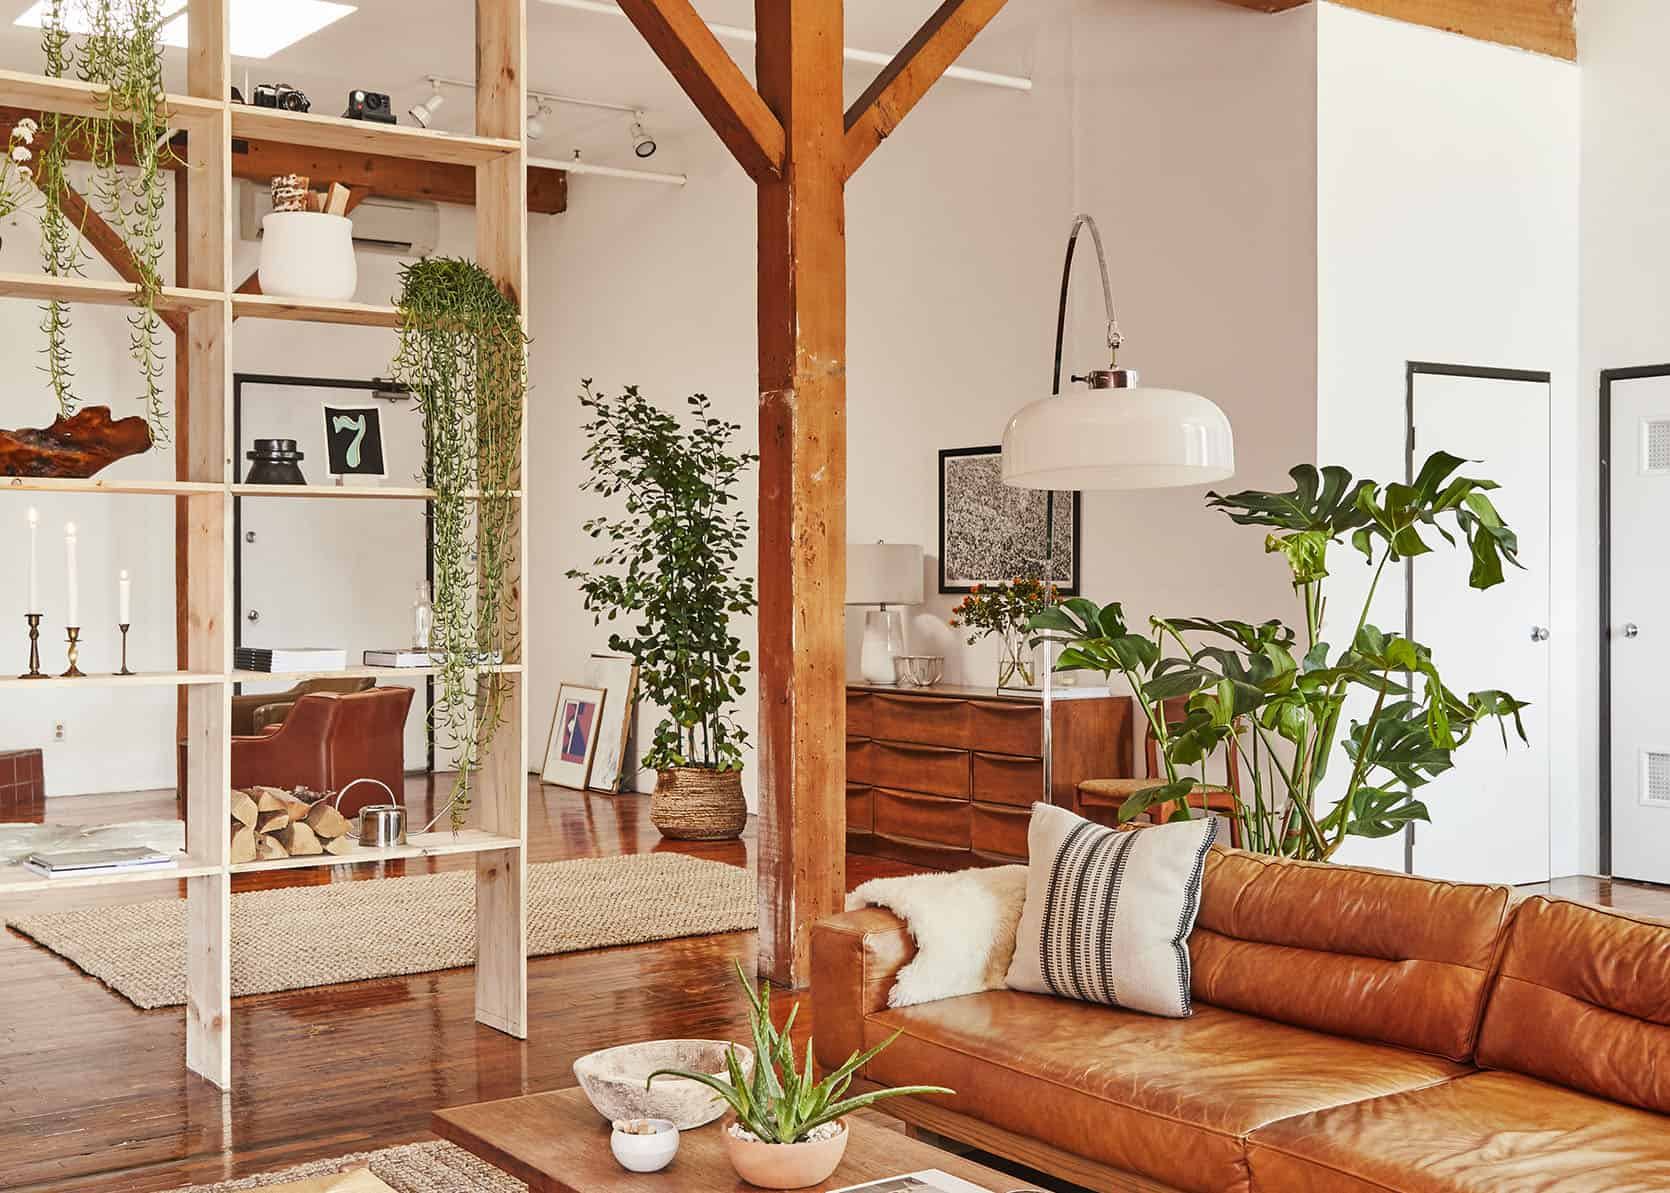 After Working For Leanne Ford, Anita Yokota, AND Living In A Van For 6 Months, You GOTTA See What Bronte Athearn Did To Her DTLA Loft